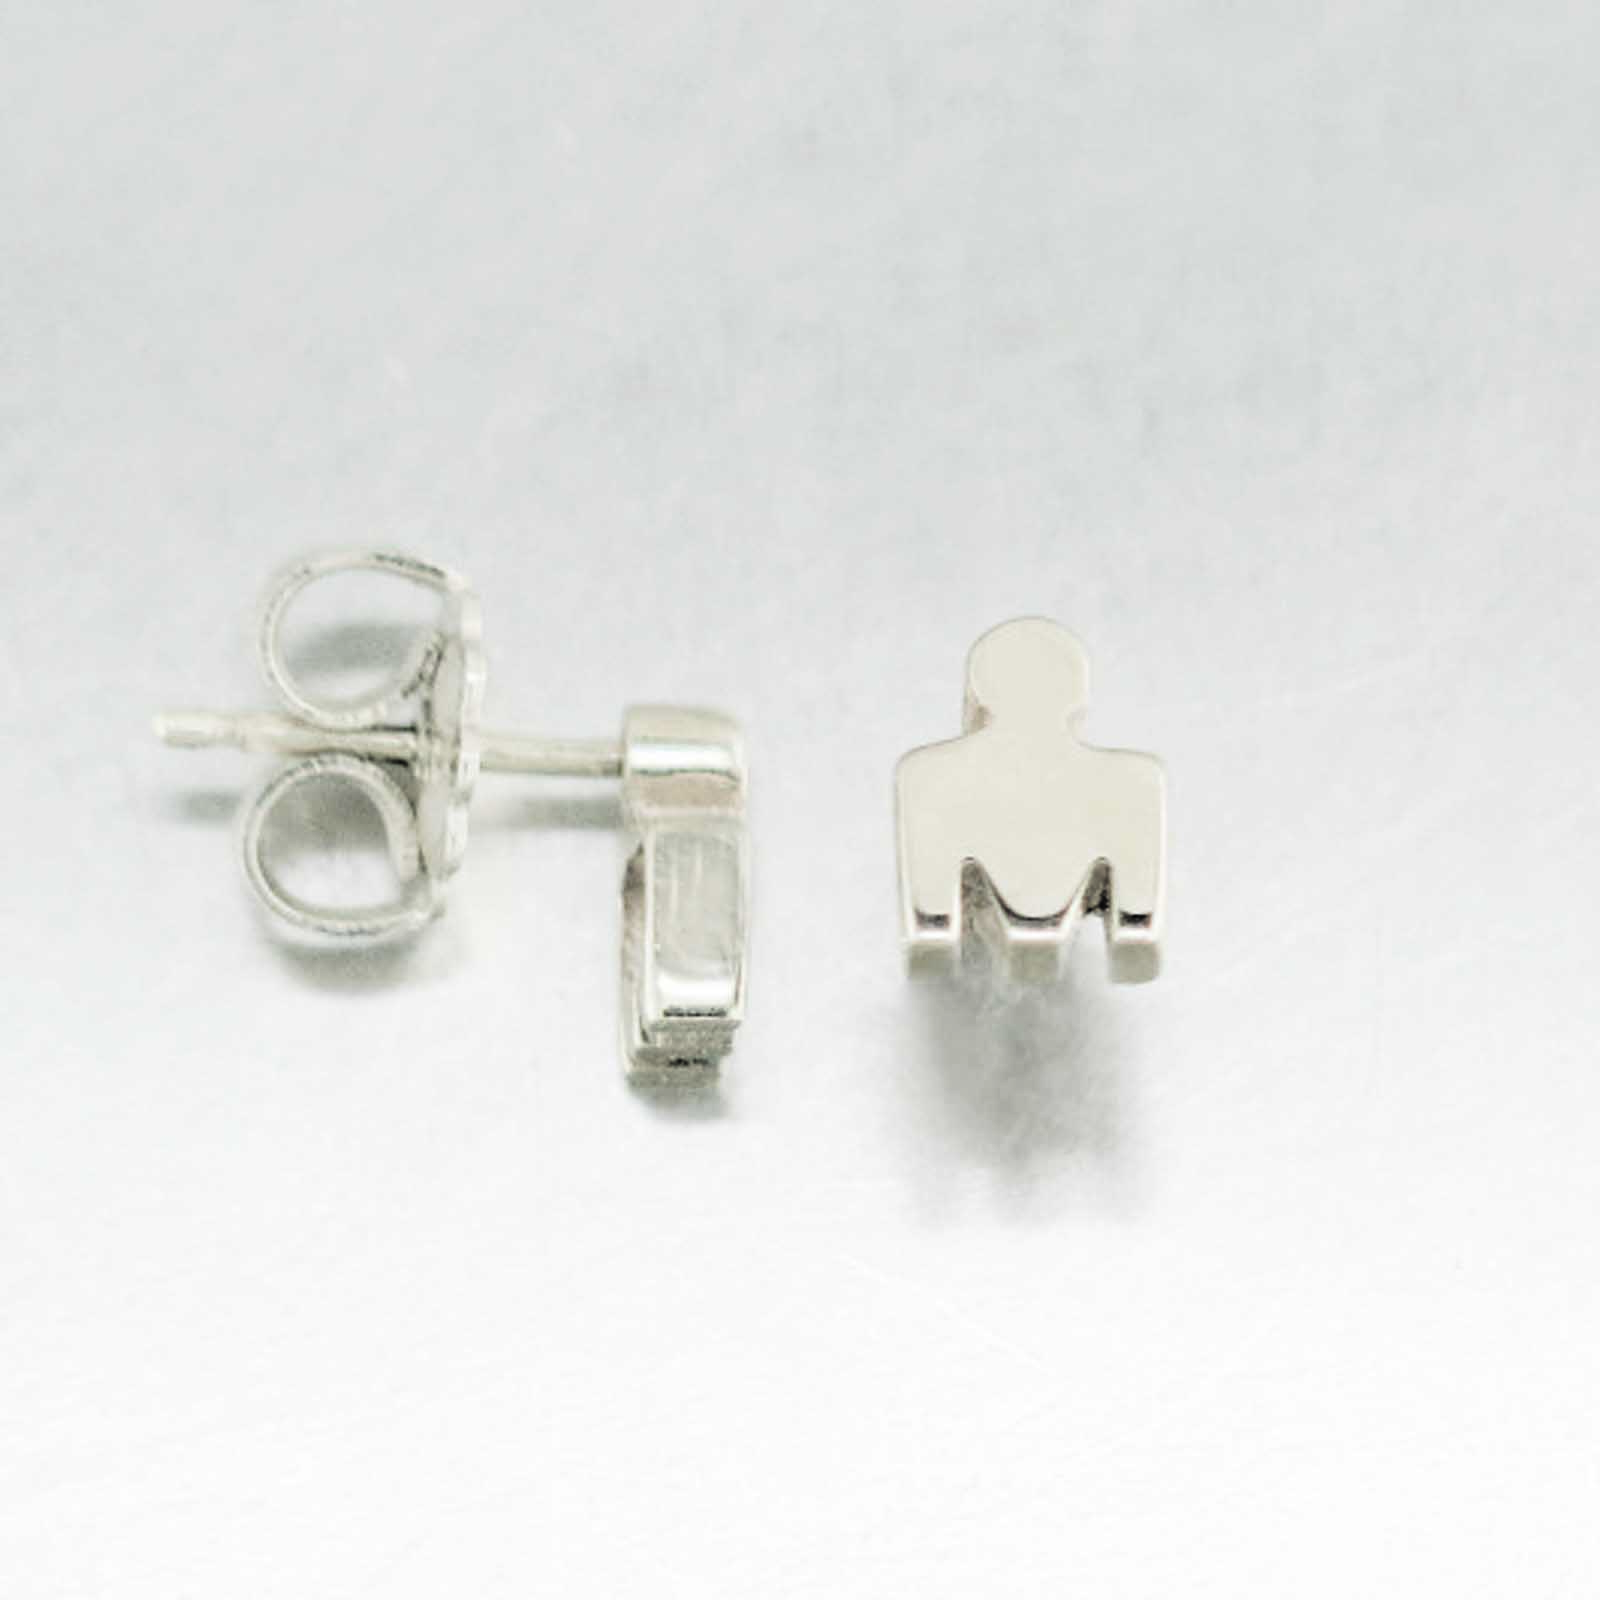 IRONMAN True Sterling Silver M-DOT Stud Earrings